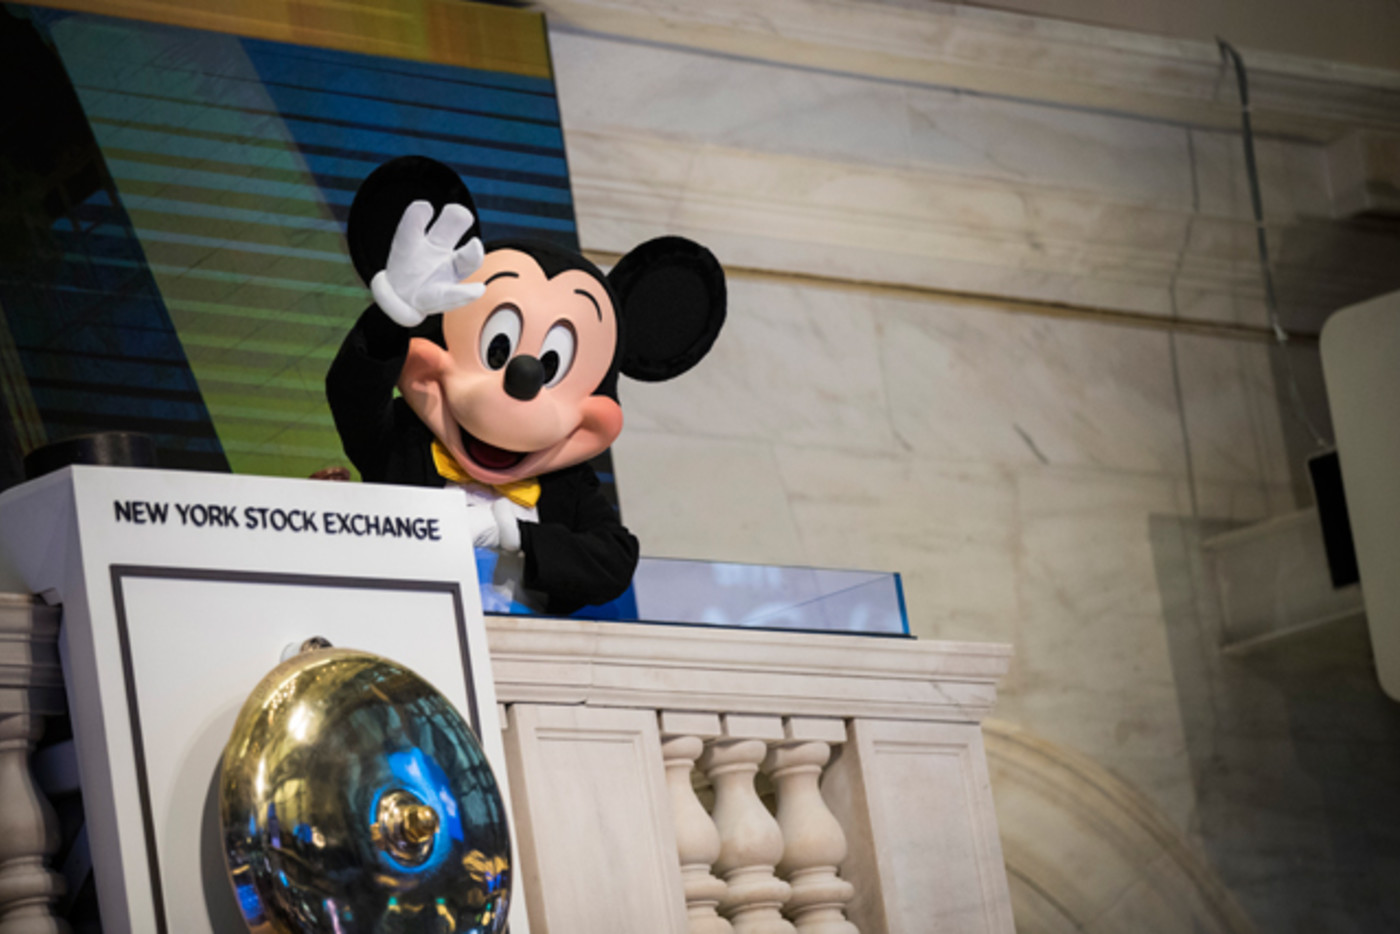 Mickey Mouse at the New York Stock Exchange